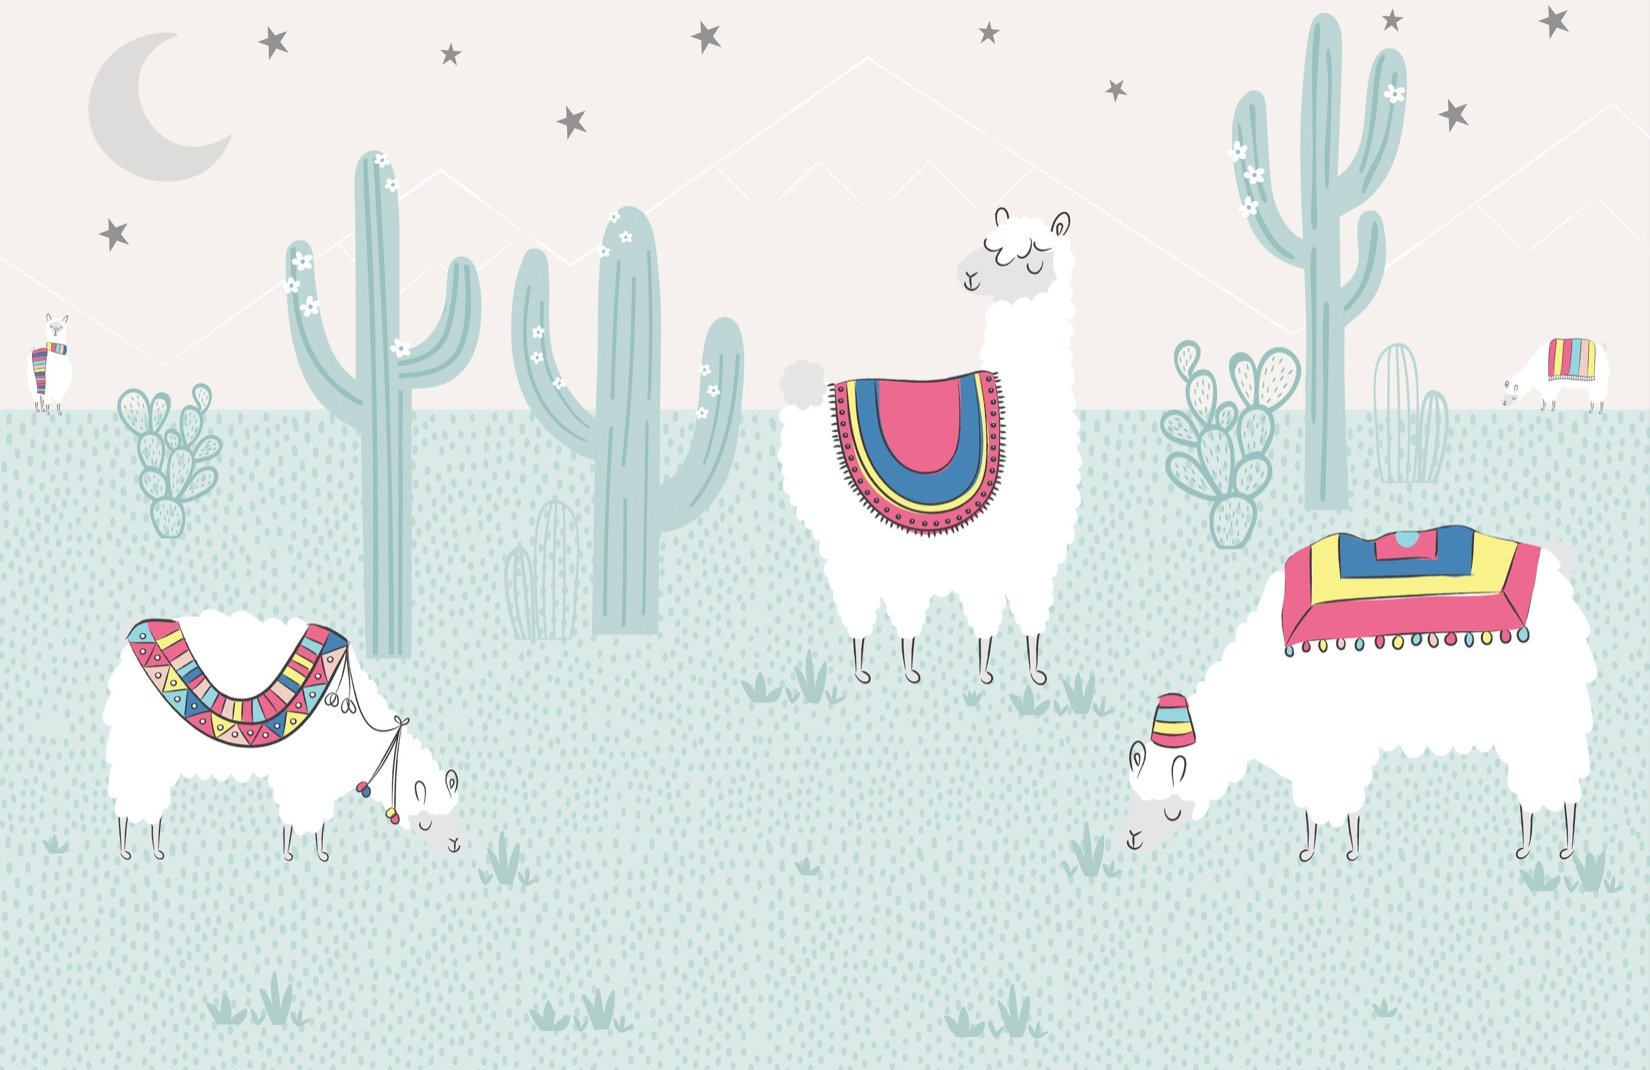 Cool Llama Wallpaper Mural MuralsWallpaper 1650x1070